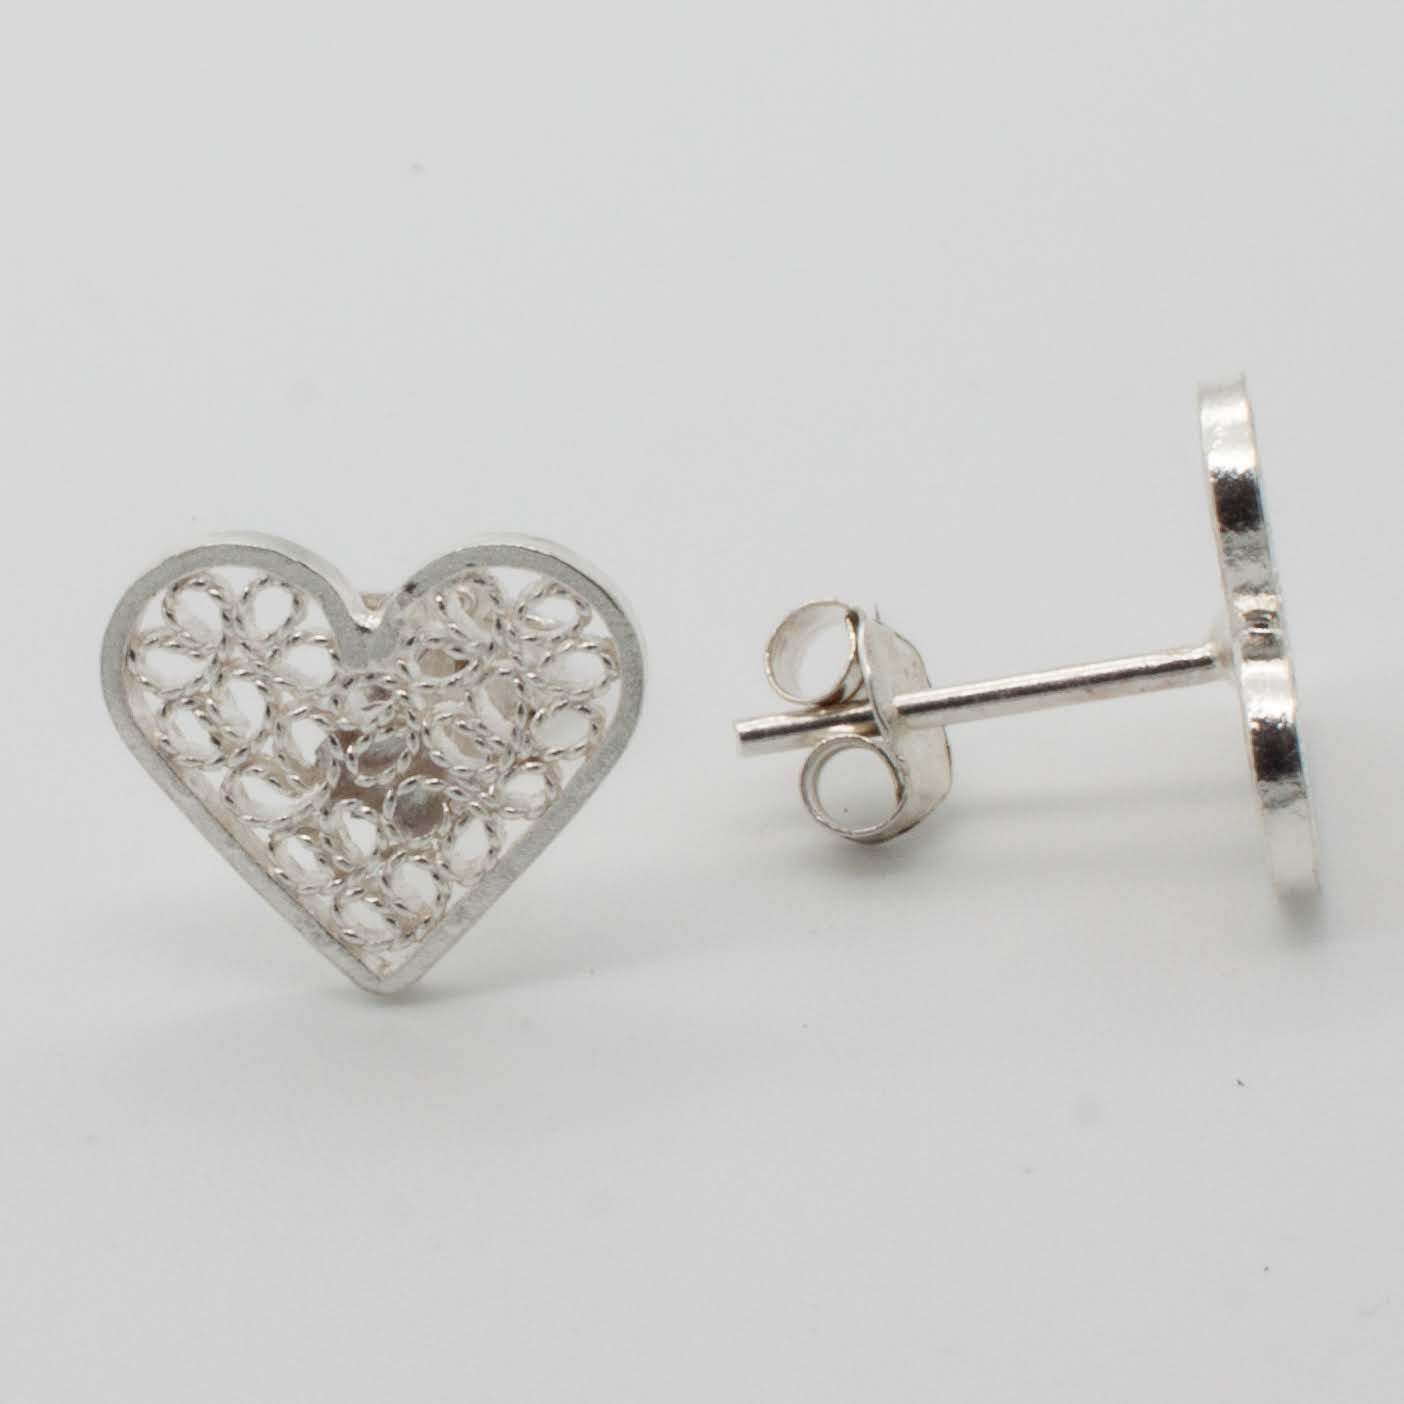 Filigree Sterling Silver XS Web Heart (Corazon Web) Stud Earrings by Gaviota